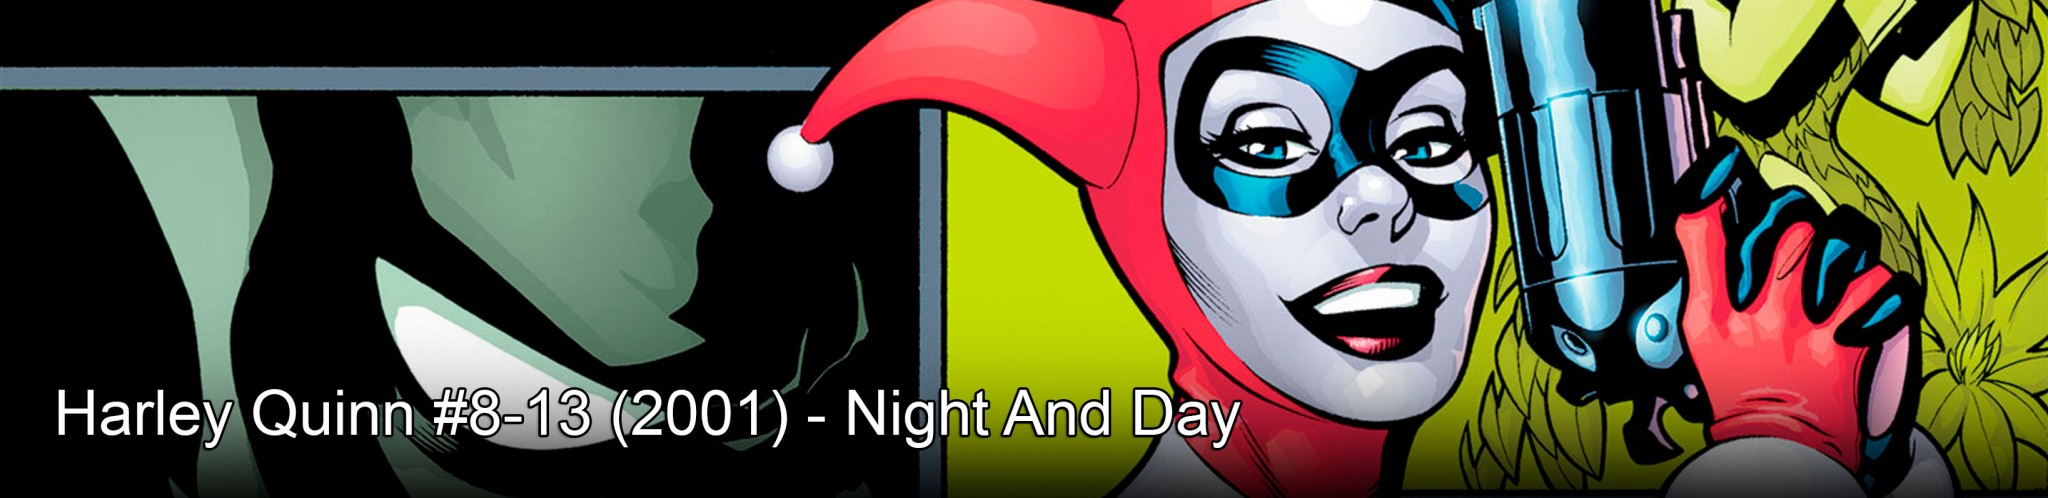 Night-And-day-harley-quinn